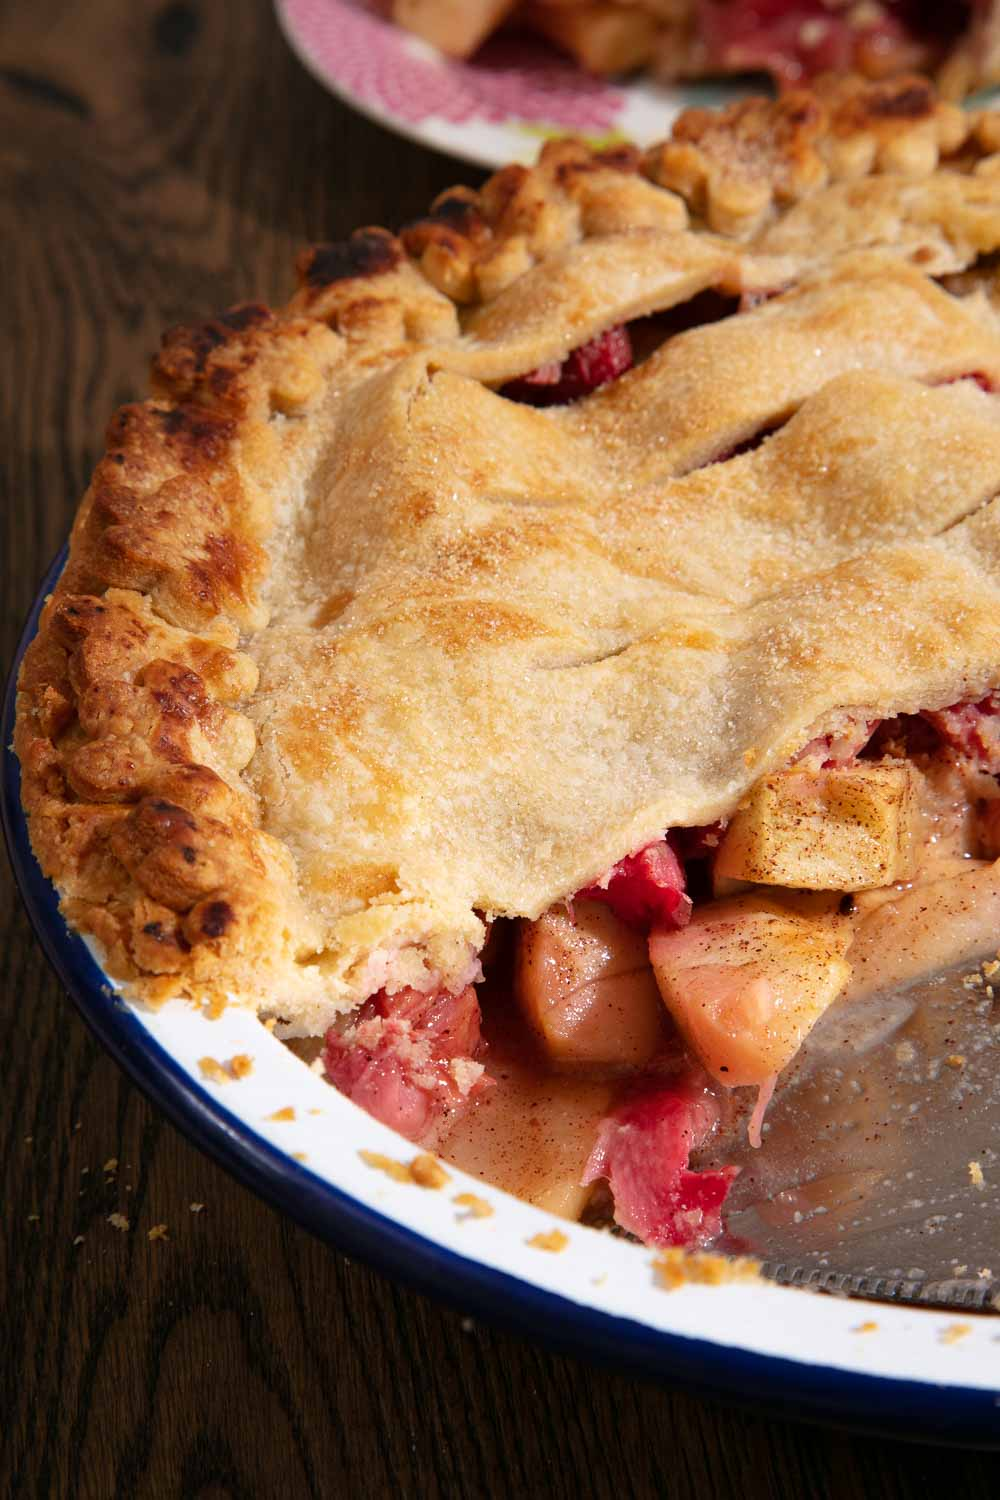 Apple and Rhubarb Pie cut to show the fruit inside.